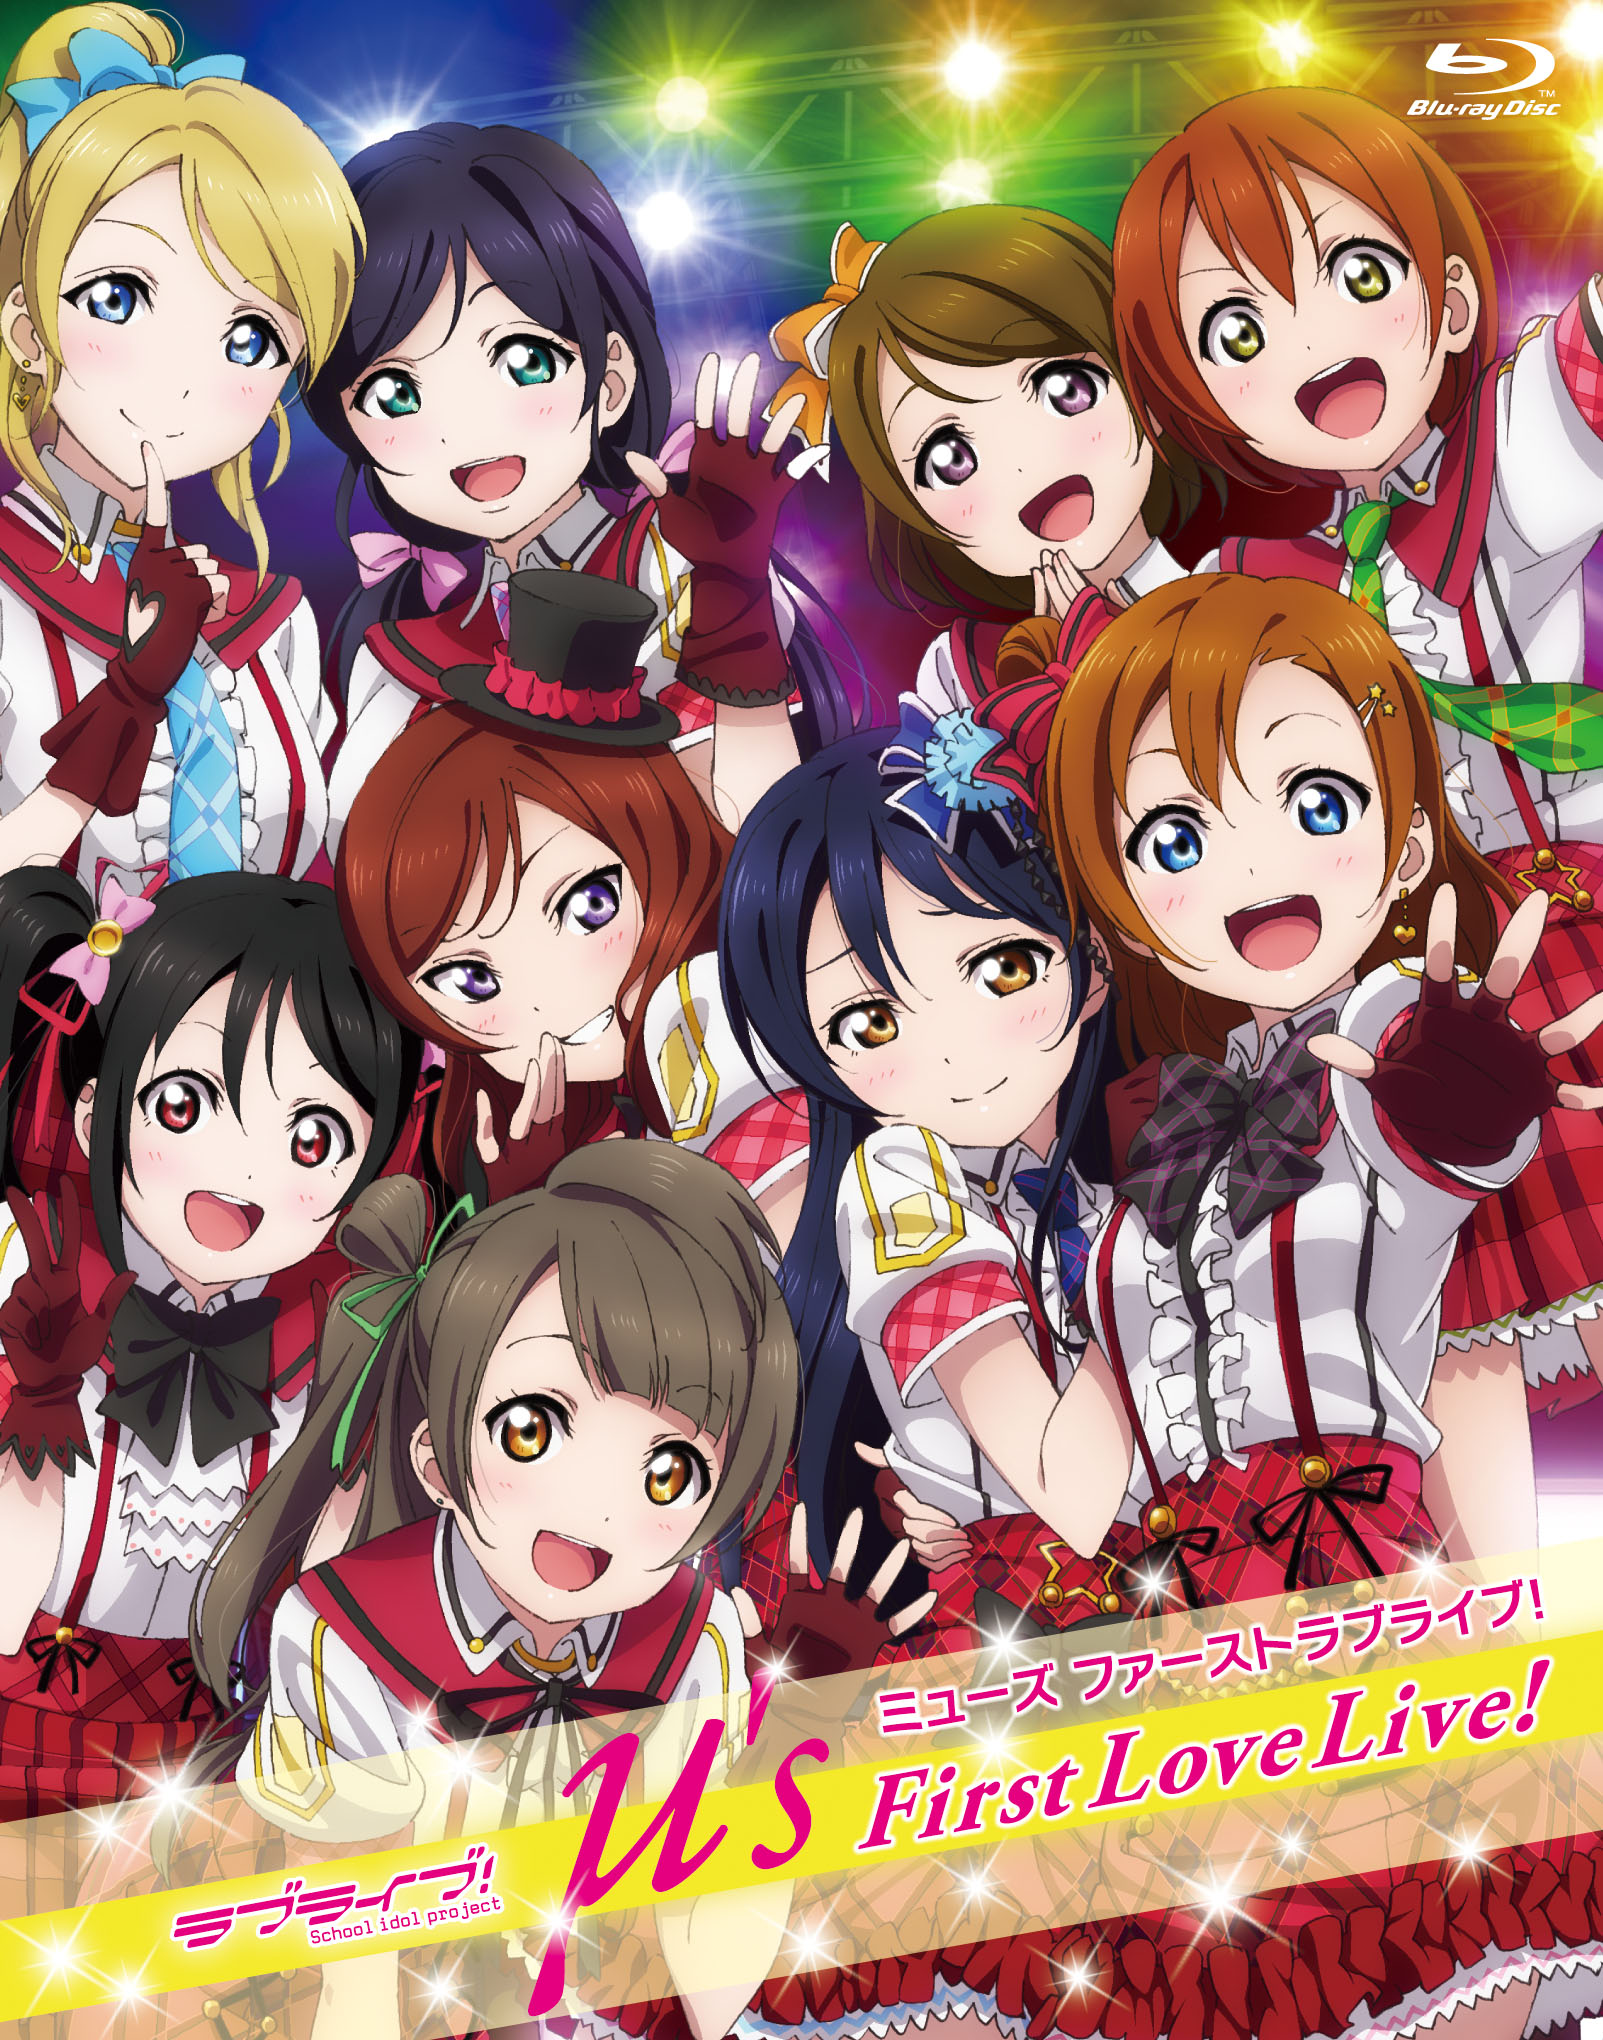 Muse's First Love Live!